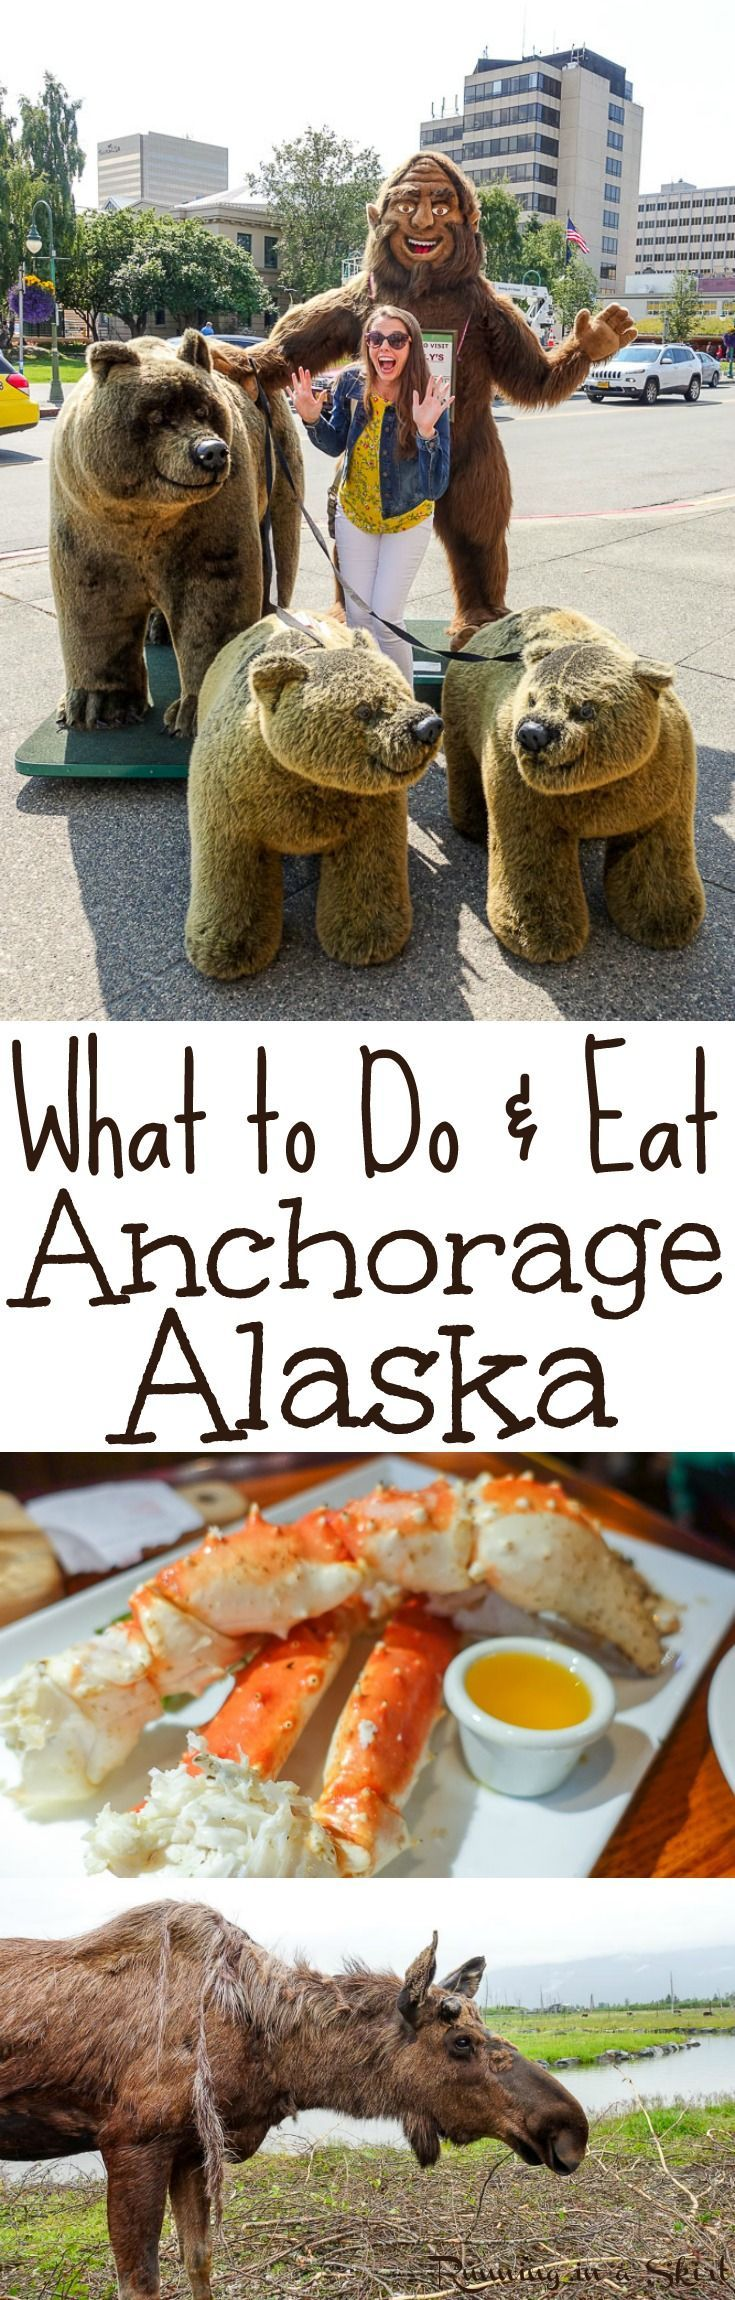 What to Do & Eat in and around Anchorage, Alaska USA- fun things to do in downtown in summer, restaurants and food, breweries and places to visit like a gold mine , Alaska Wildlife Conservation Center and Gwennies.  Beautiful pictures and tips of this bucket list adventure trip.  / Running in a Skirt